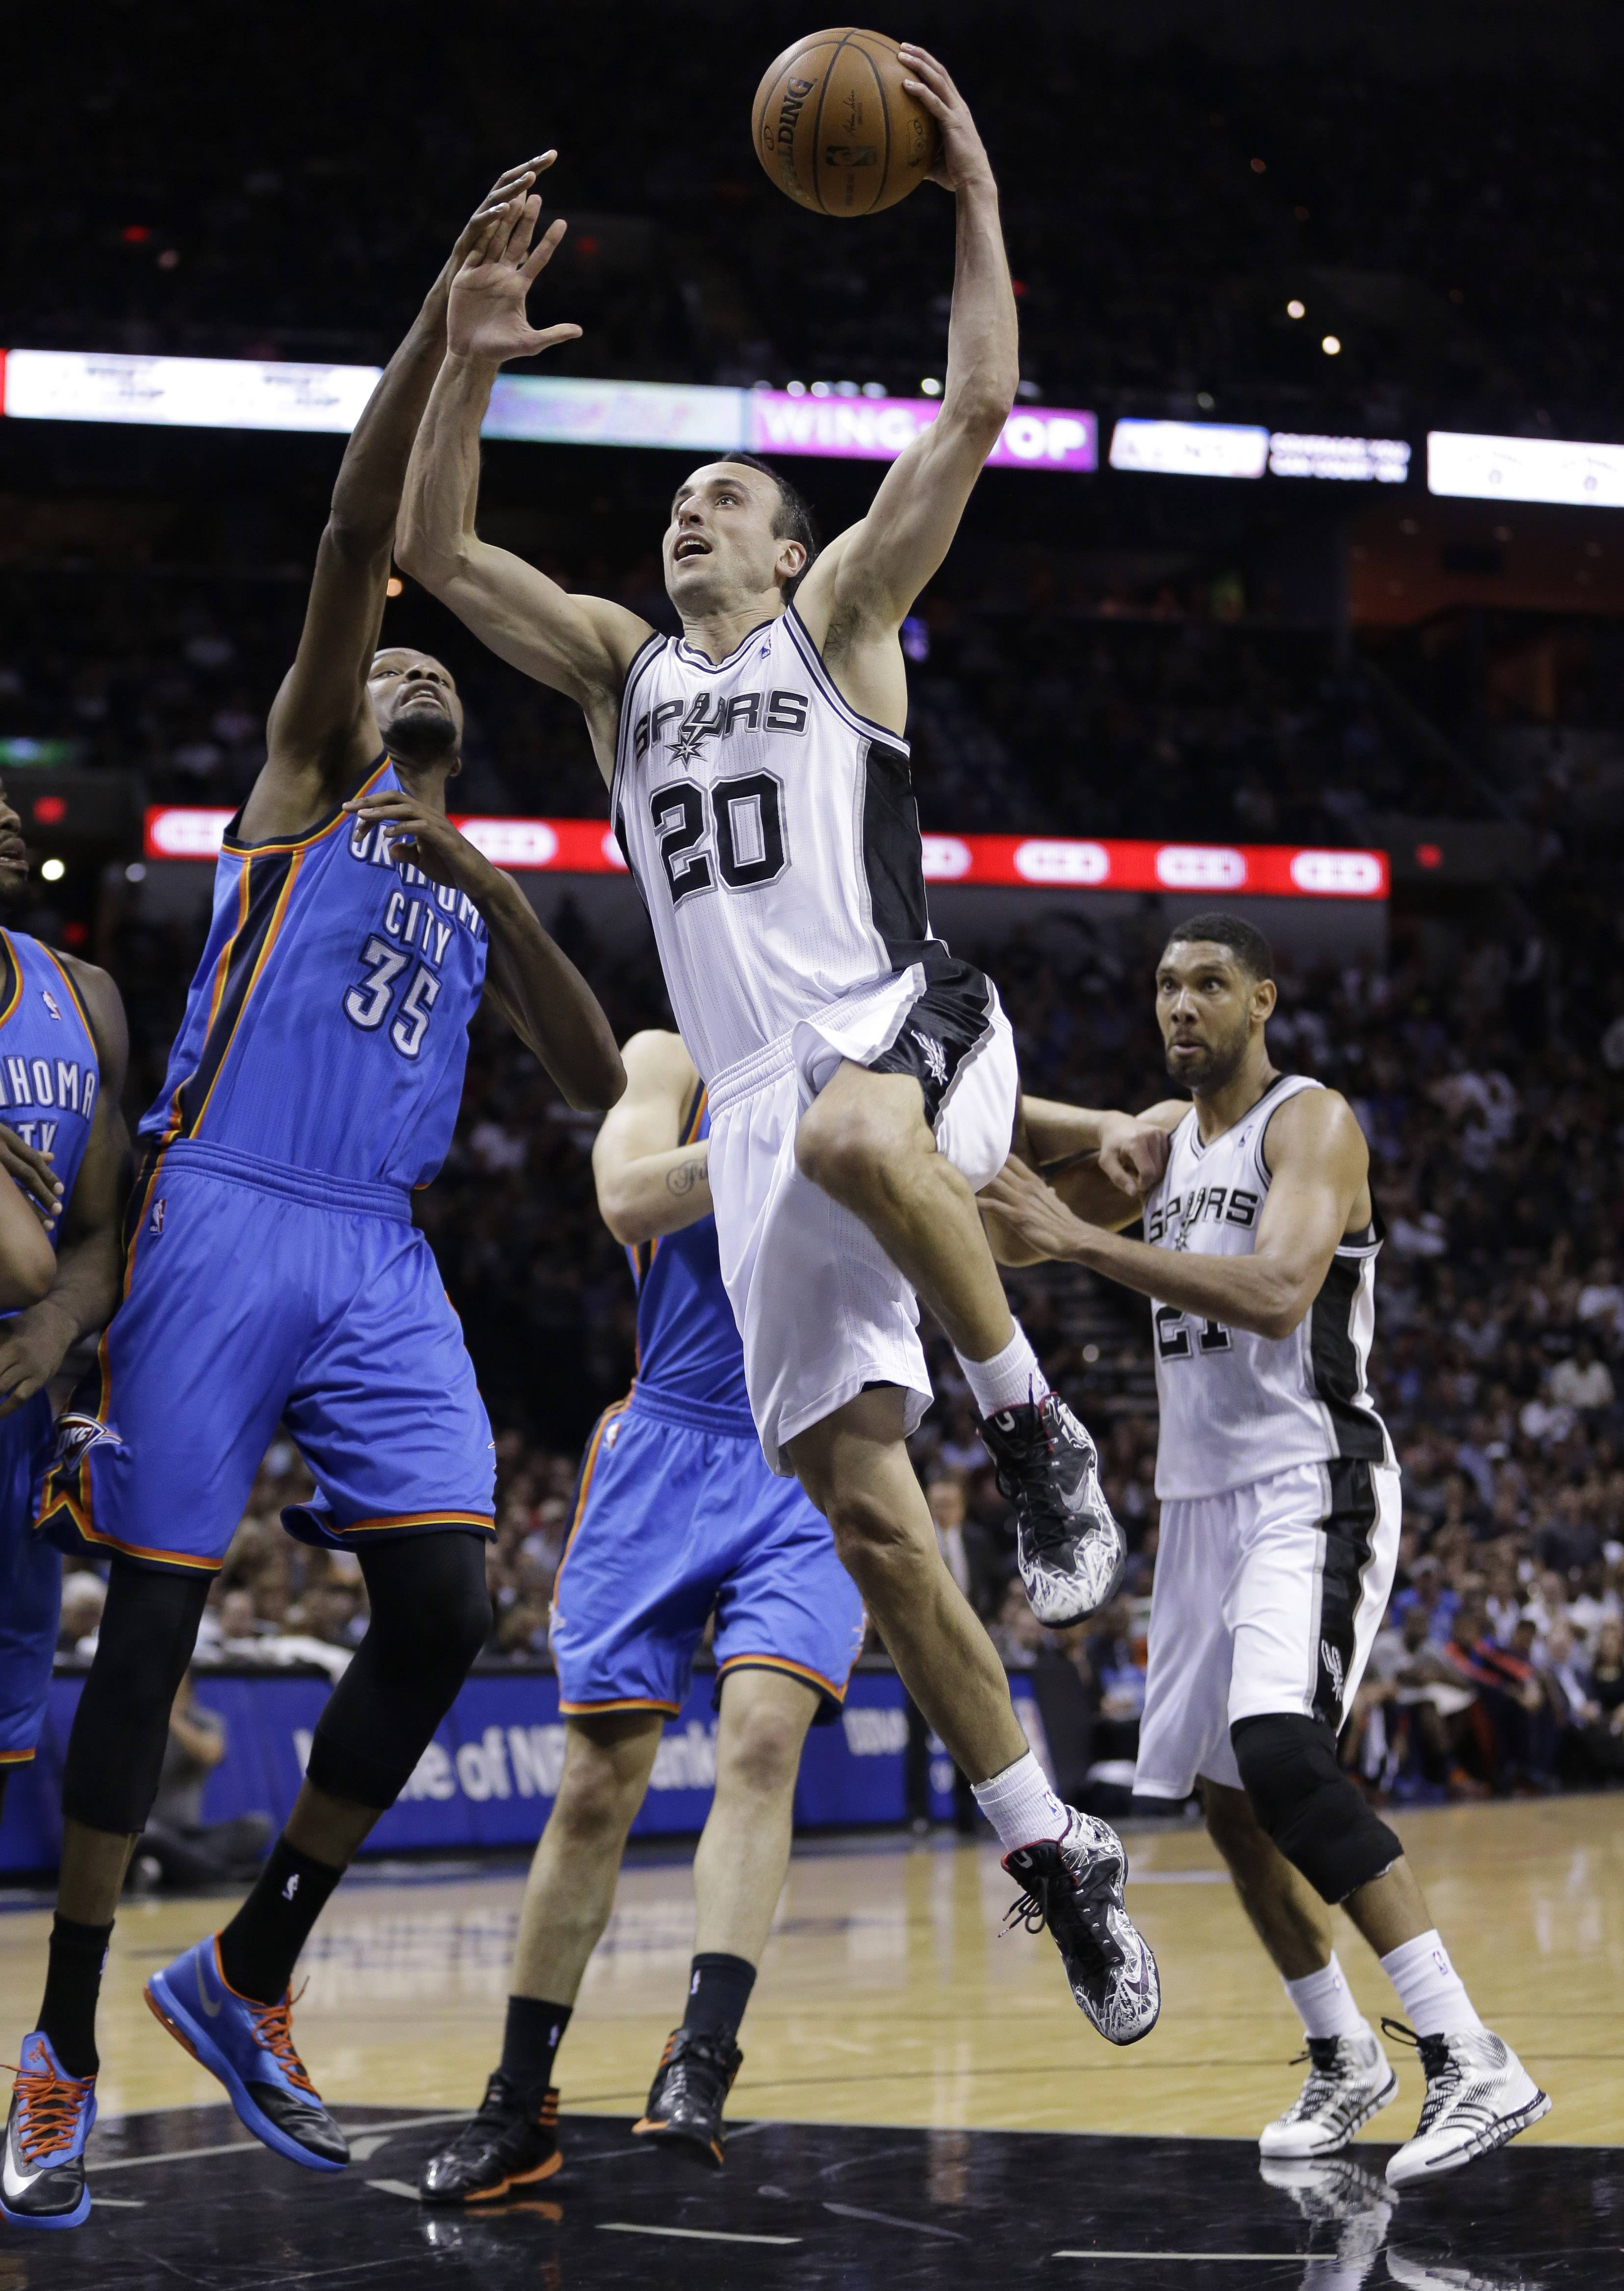 Manu Ginobili scored 19 points and the San Antonio Spurs rolled to a 117-89 victory over the Oklahoma City Thunder on Thursday night to take a 3-2 lead in the Western Conference finals.